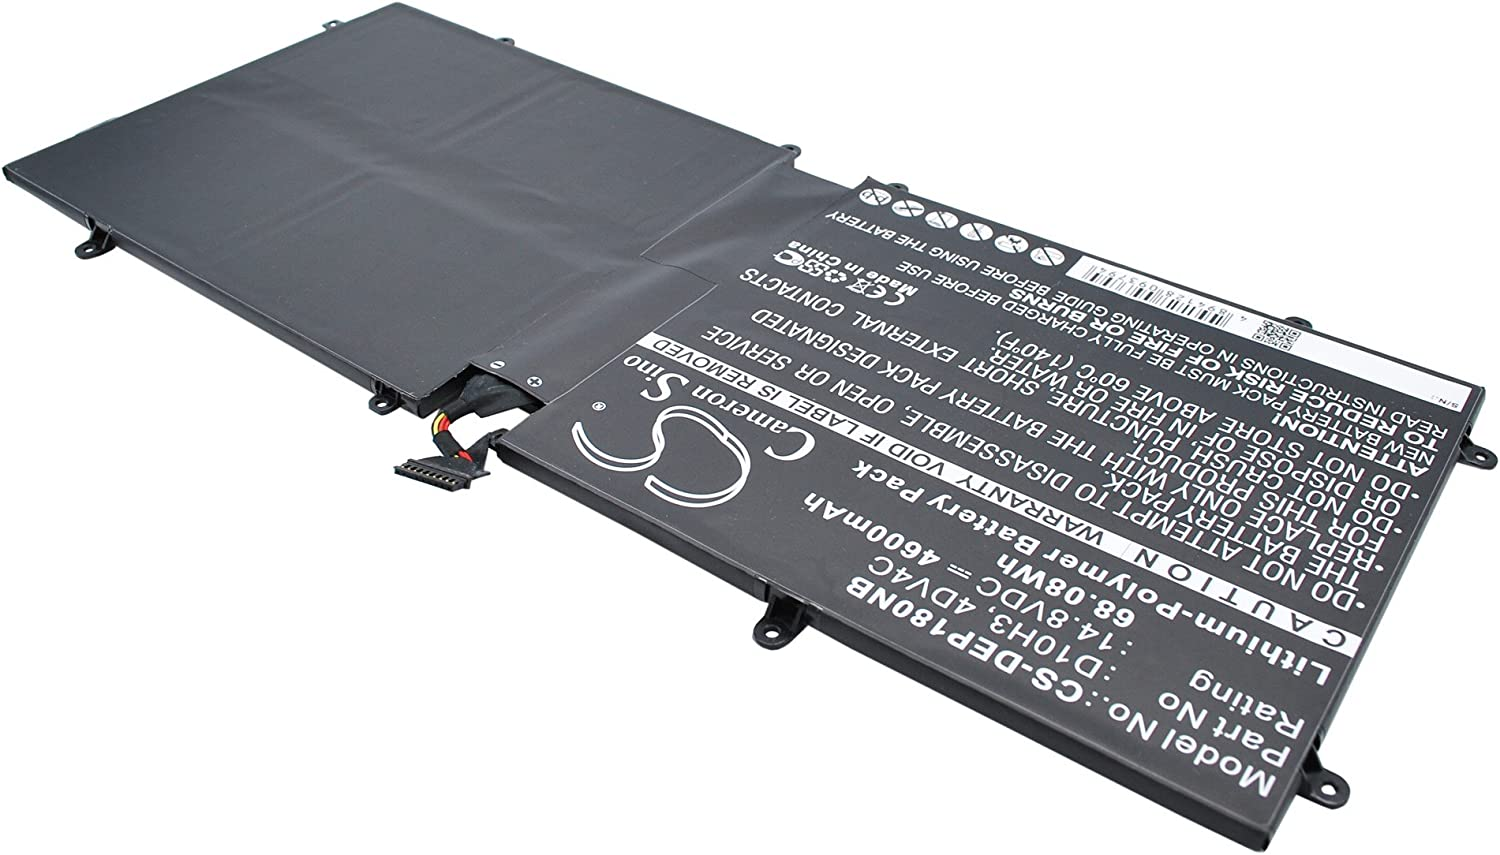 GAXI Battery for DELL XPS 18, XPS 18 1810, XPS 18 1820 Replacement for P/N 4DV4C, 63FK6, D10H3